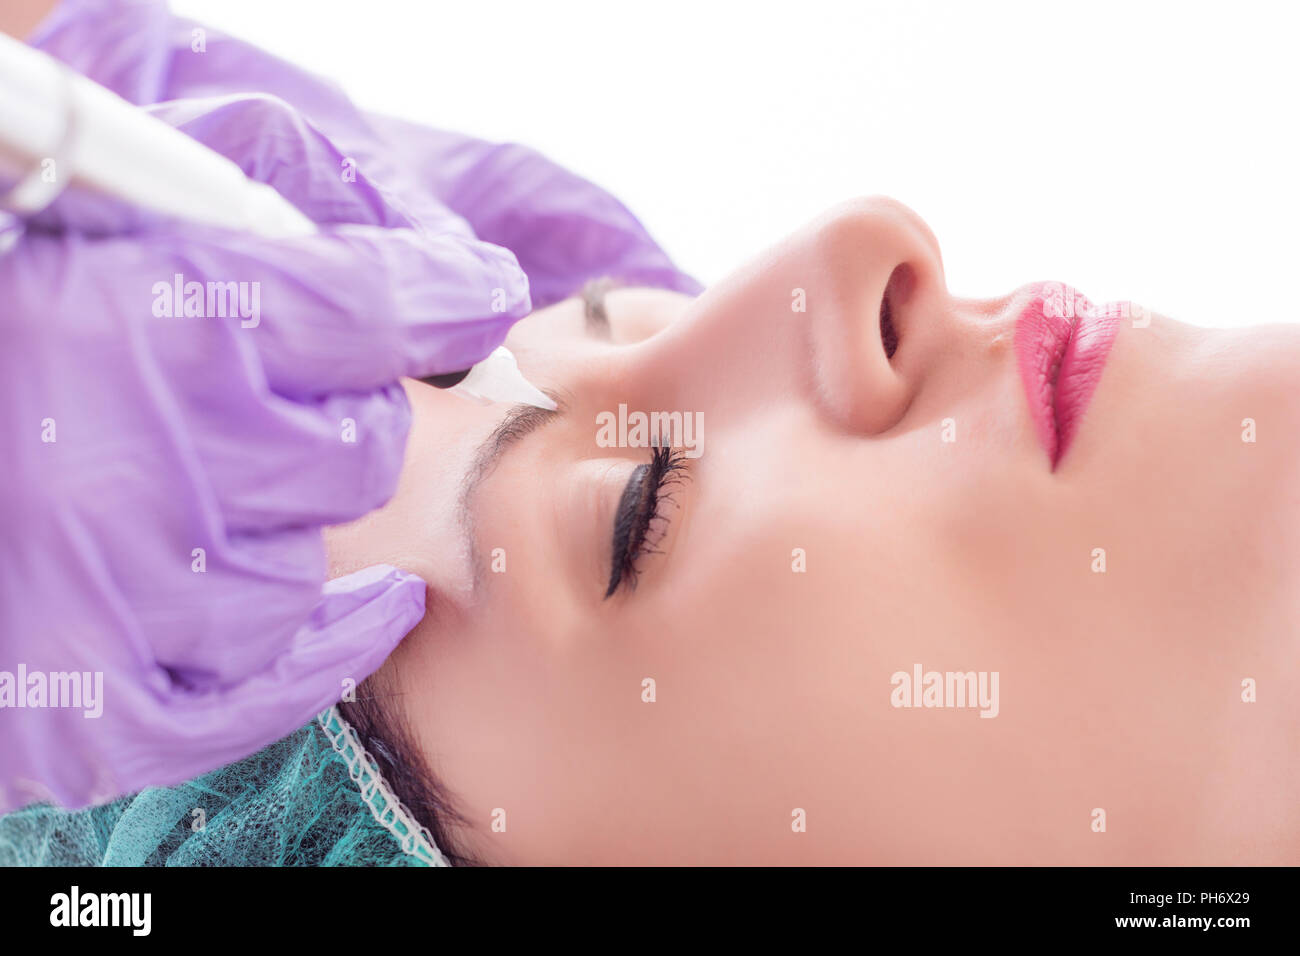 Applying permanent make up on eyebrows in beauty studio on young woman. Cosmetologist tattooing with professional tool. Close up, selective focus - Stock Image